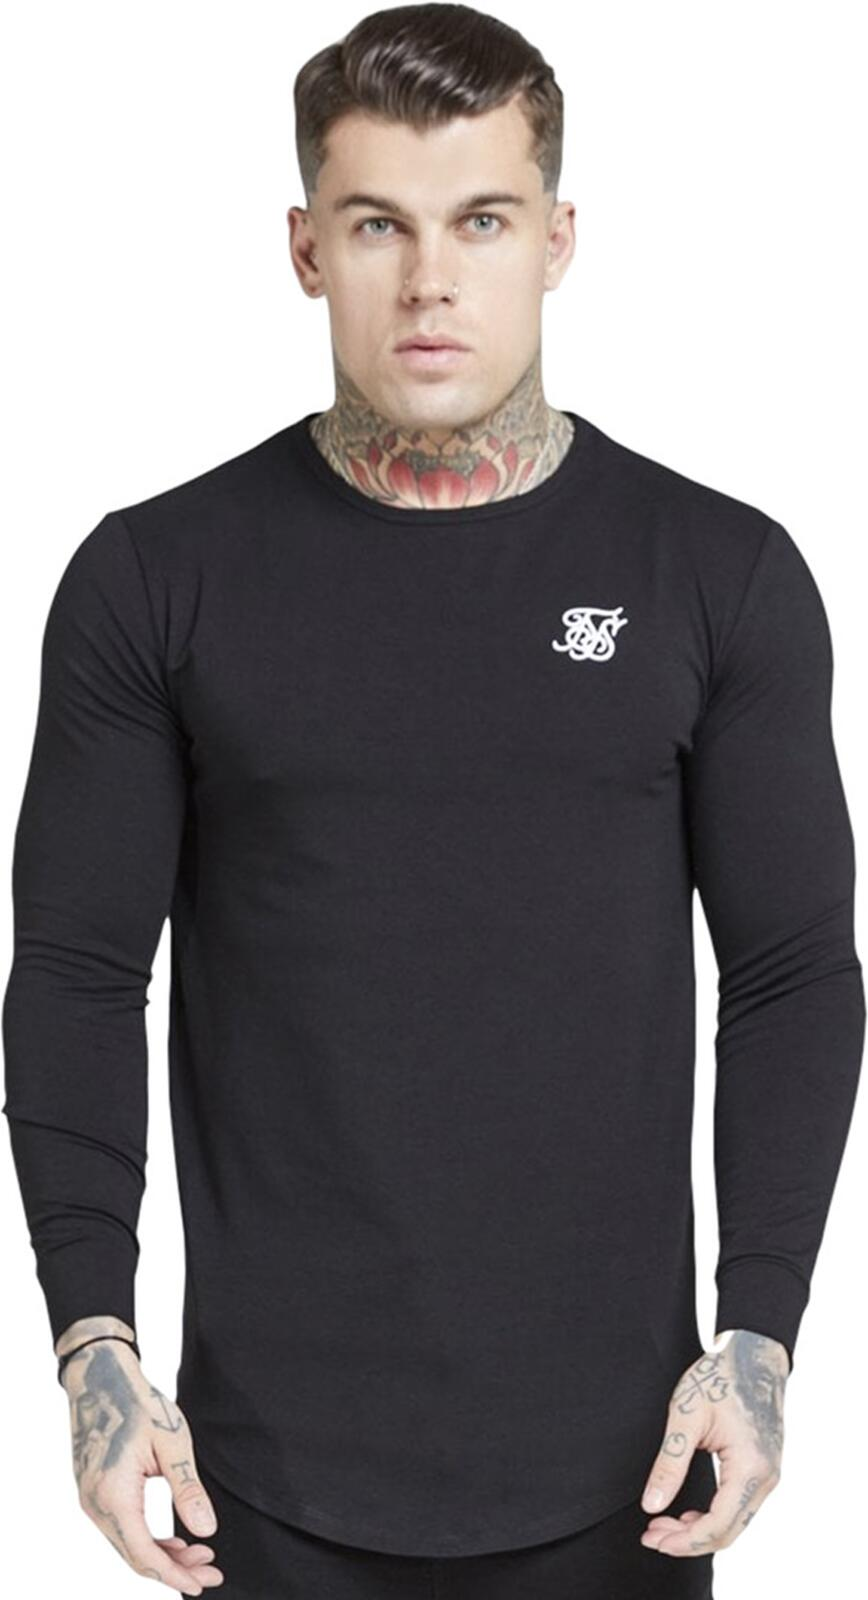 Sik Silk Long Sleeve Core Gym T-Shirt Black